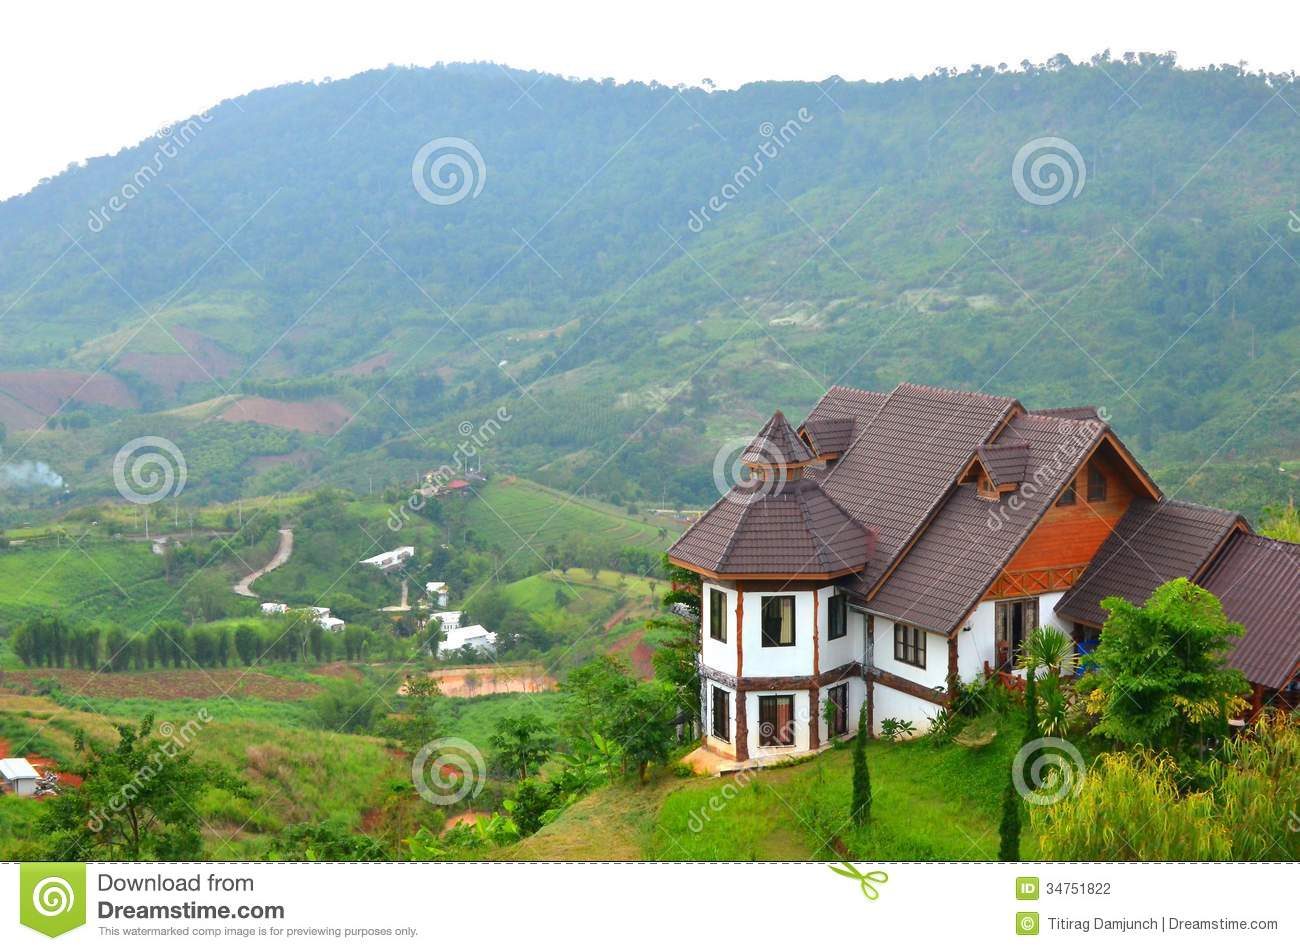 House and mountain view stock photography image 34751822 for Beautiful house view